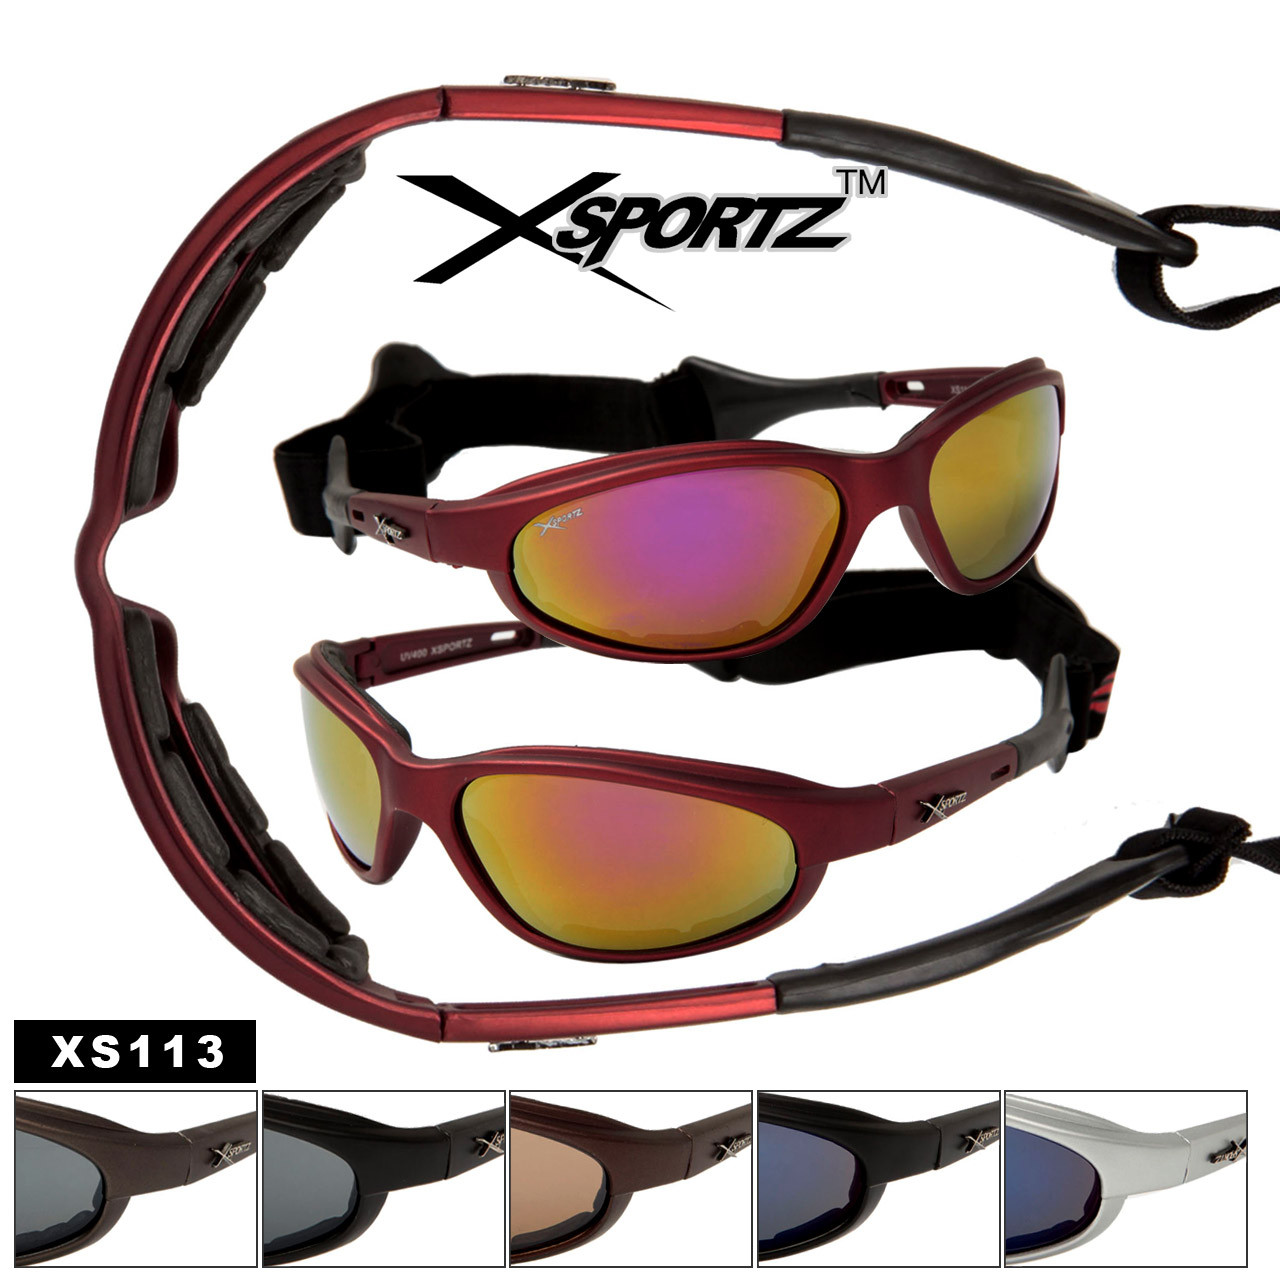 7b24e2781ad Wholesale Motorcycle Sunglasses Foam Padded - XS113